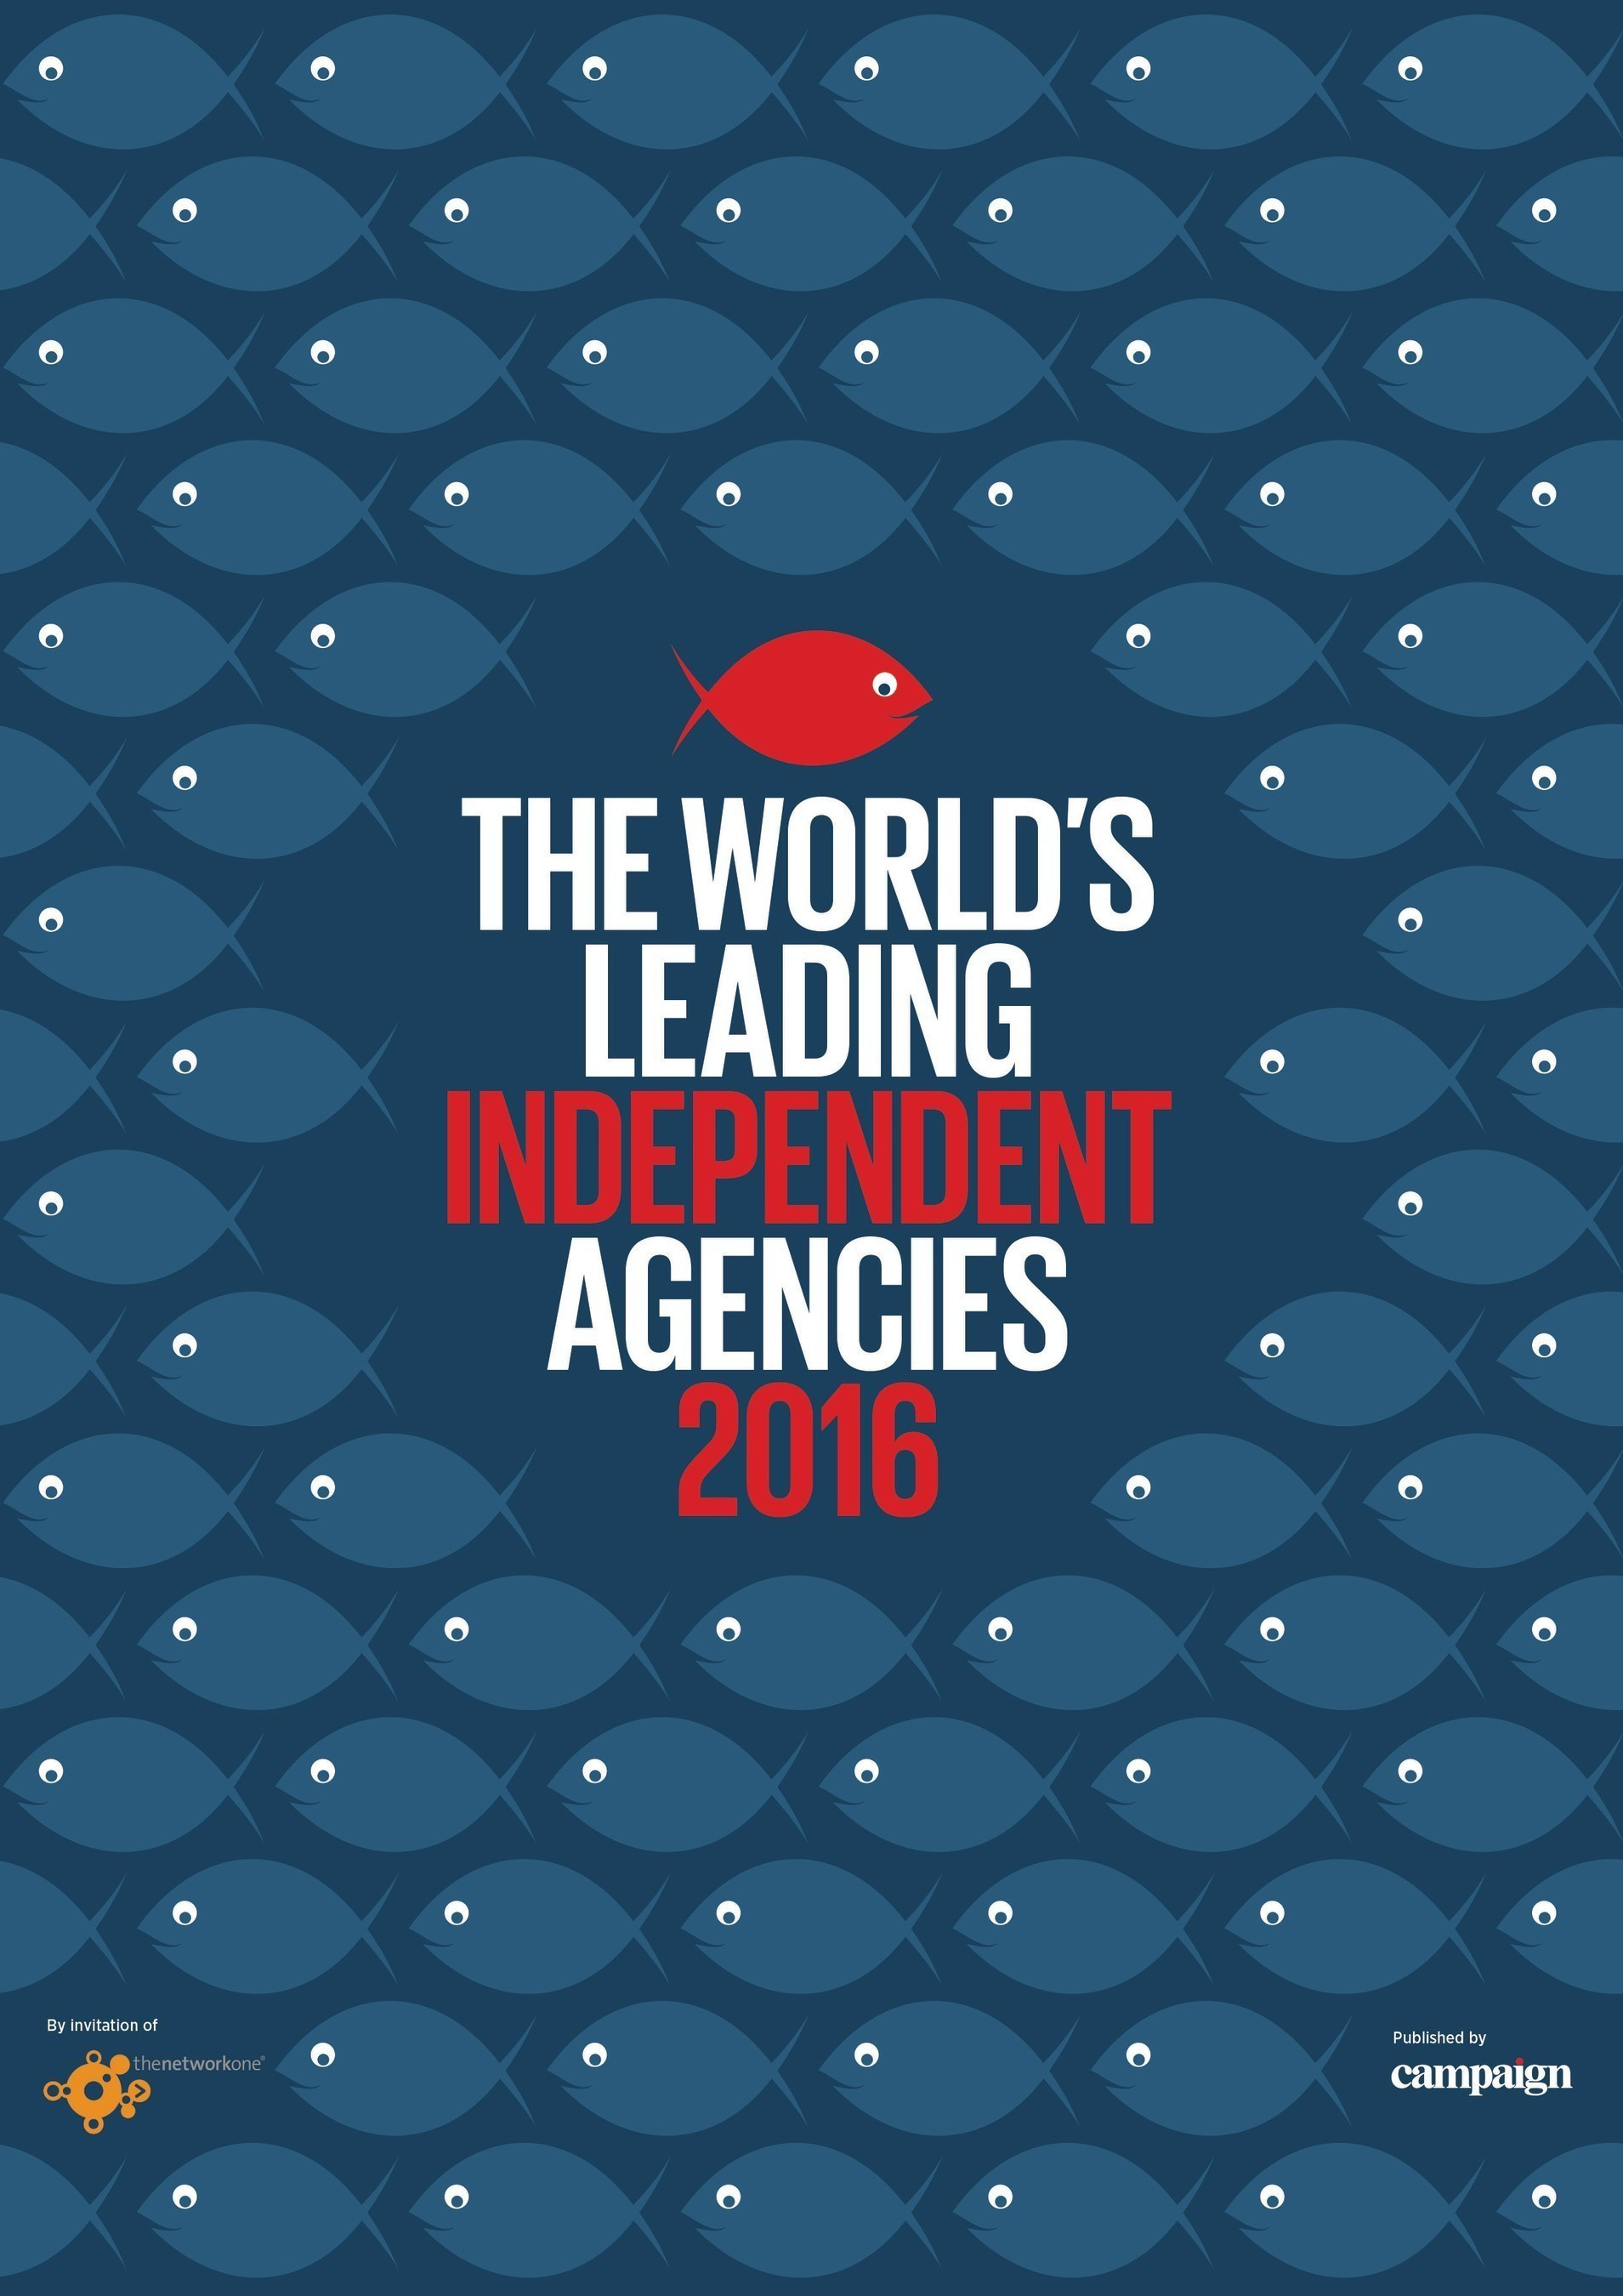 Nelson Schmidt Inc. is among the 2016 World's Leading Independent Agencies, which is published by Campaign magazine and thenetworkone.